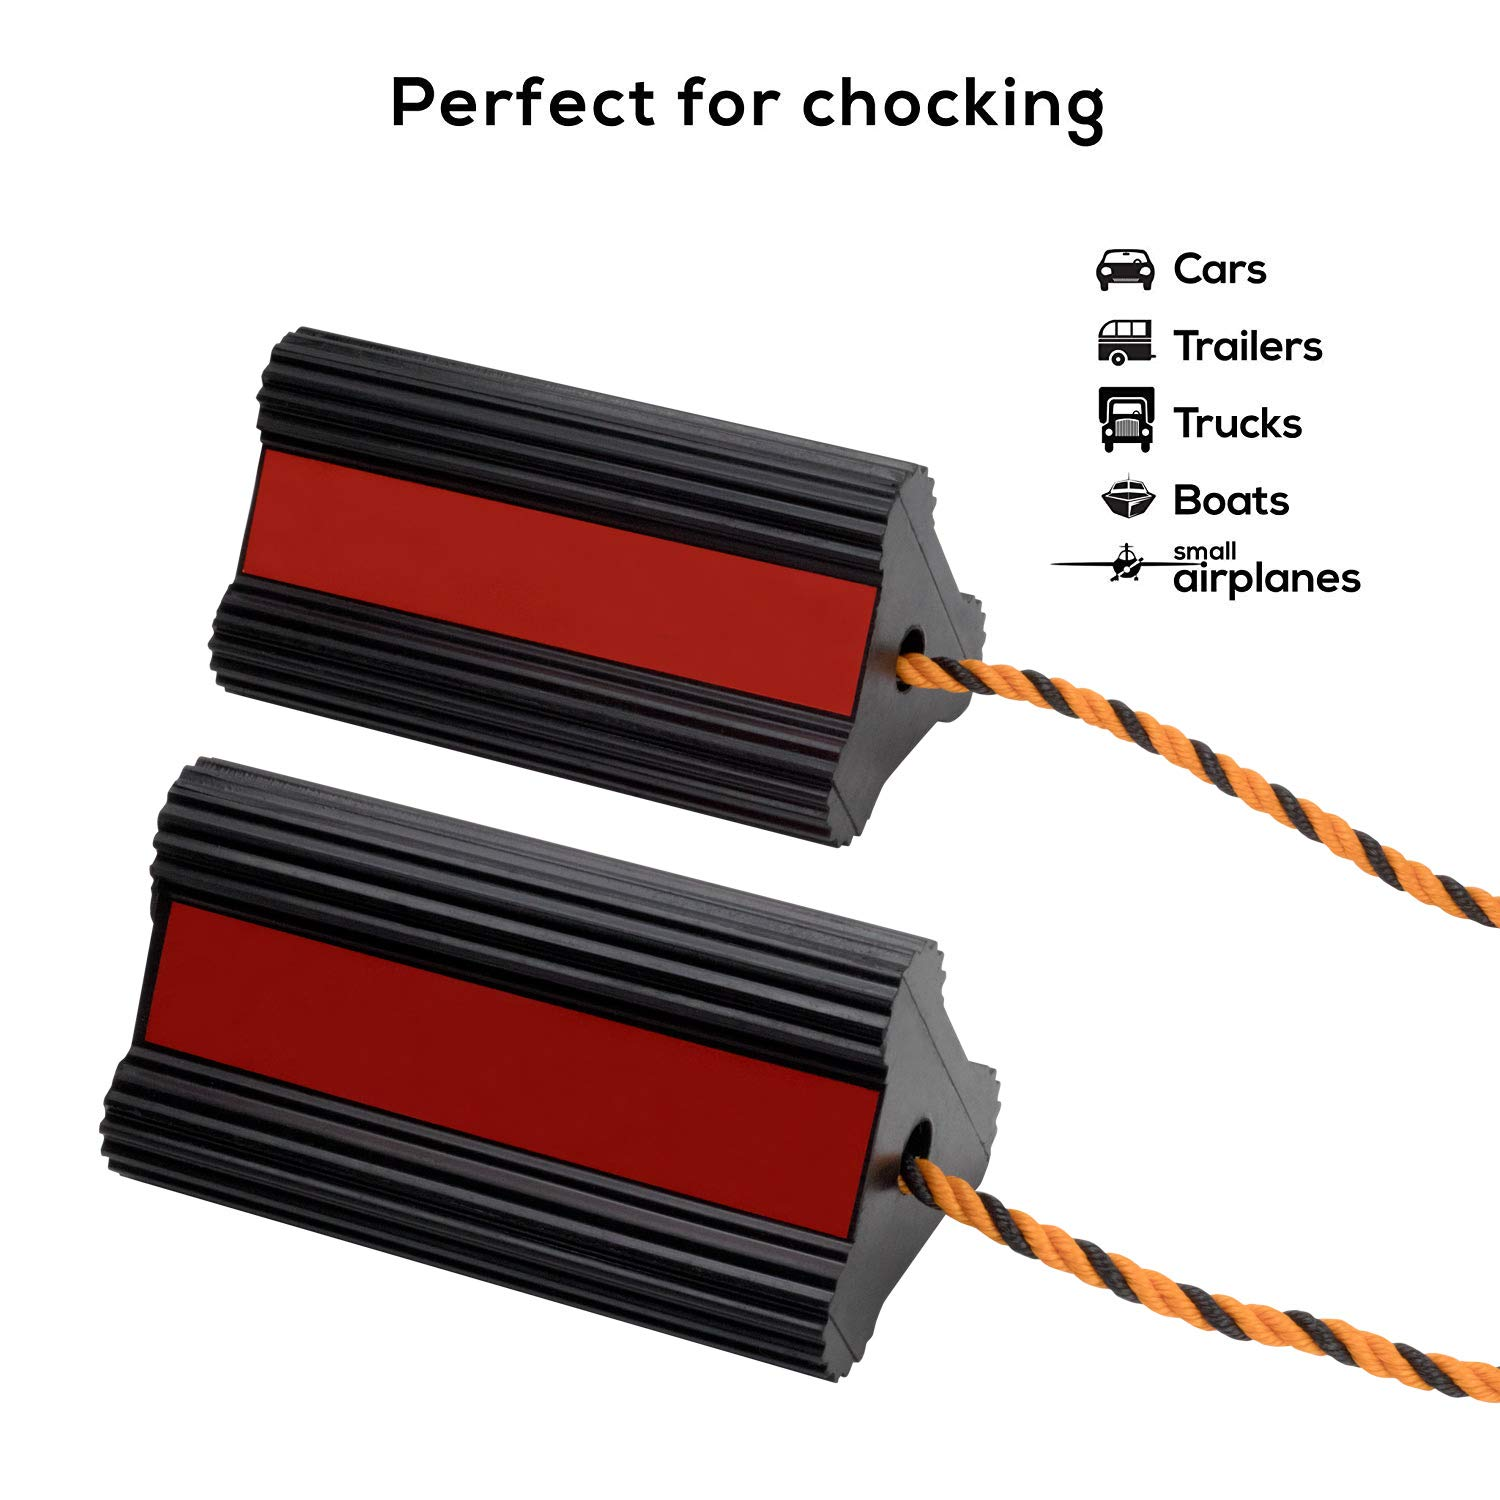 Valup Wheel Chocks - Car and RV Rubber Block - Long Connecting Rope - Heavy Duty Car Wheel Stoppers Chock - Extremely Durable - for Cars, Boats, Trucks, Aircraft, RVs (1 Pair) by Valup (Image #4)